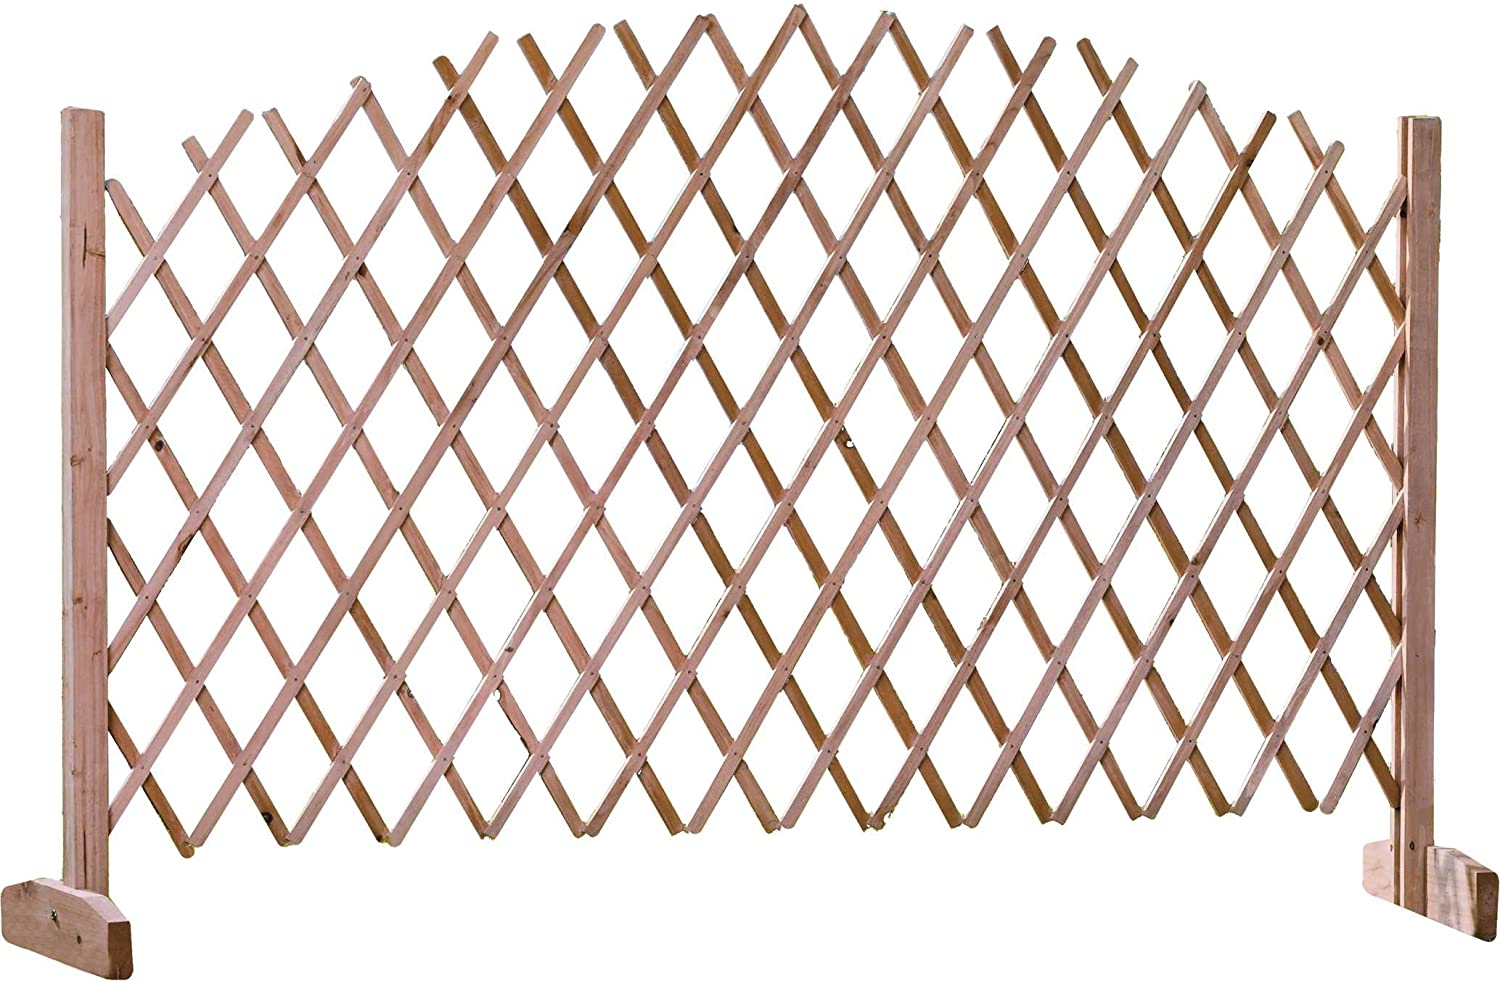 Wooden Expanding Garden Trellis Fence   180 X 30 X 105 Cm: Amazon.co.uk:  Kitchen U0026 Home